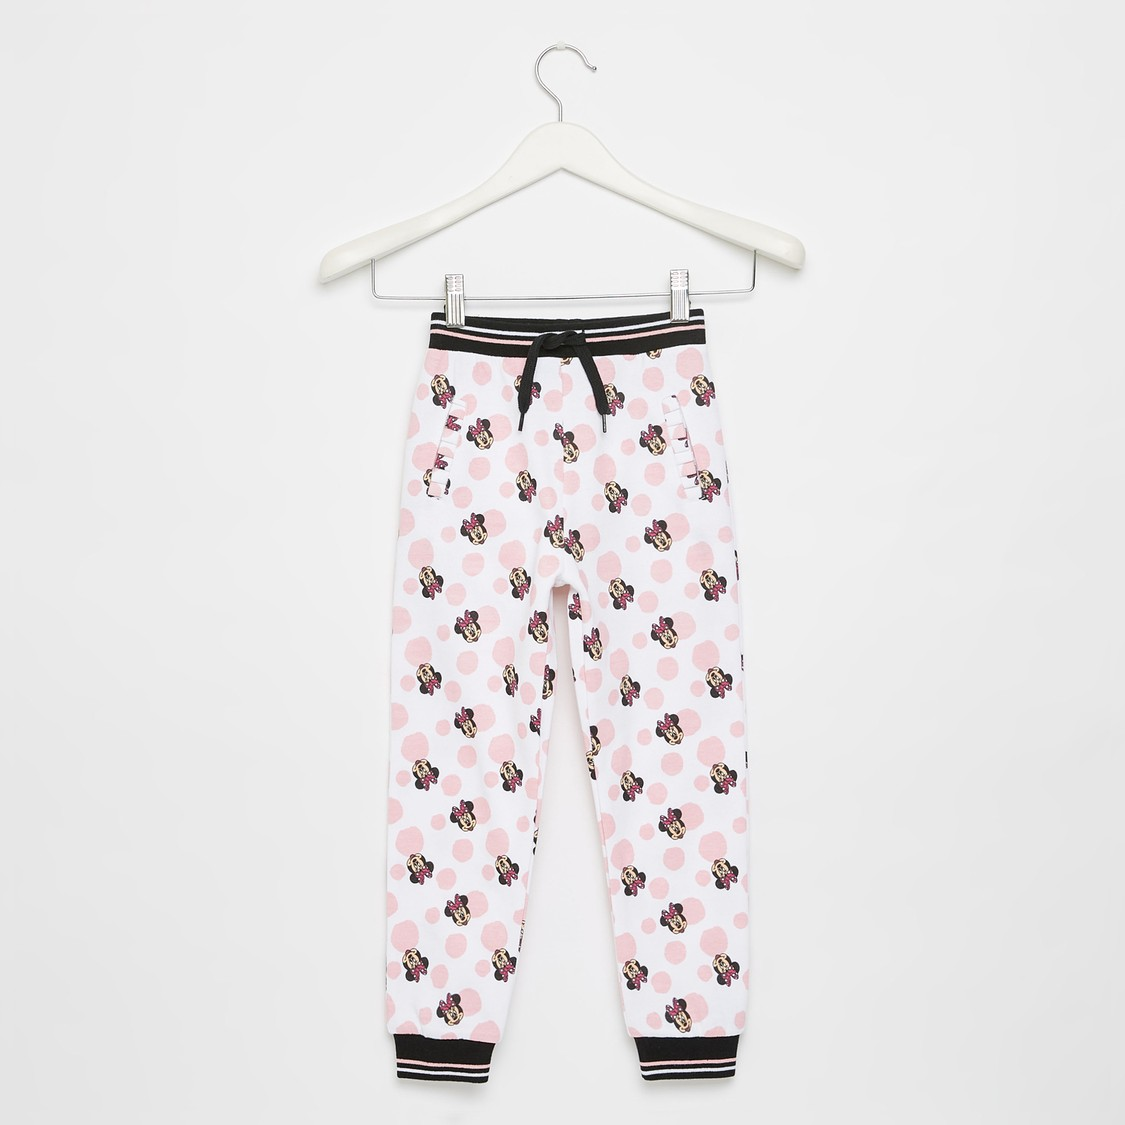 All-Over Minnie Mouse Print Jog Pants with Drawstring Closure